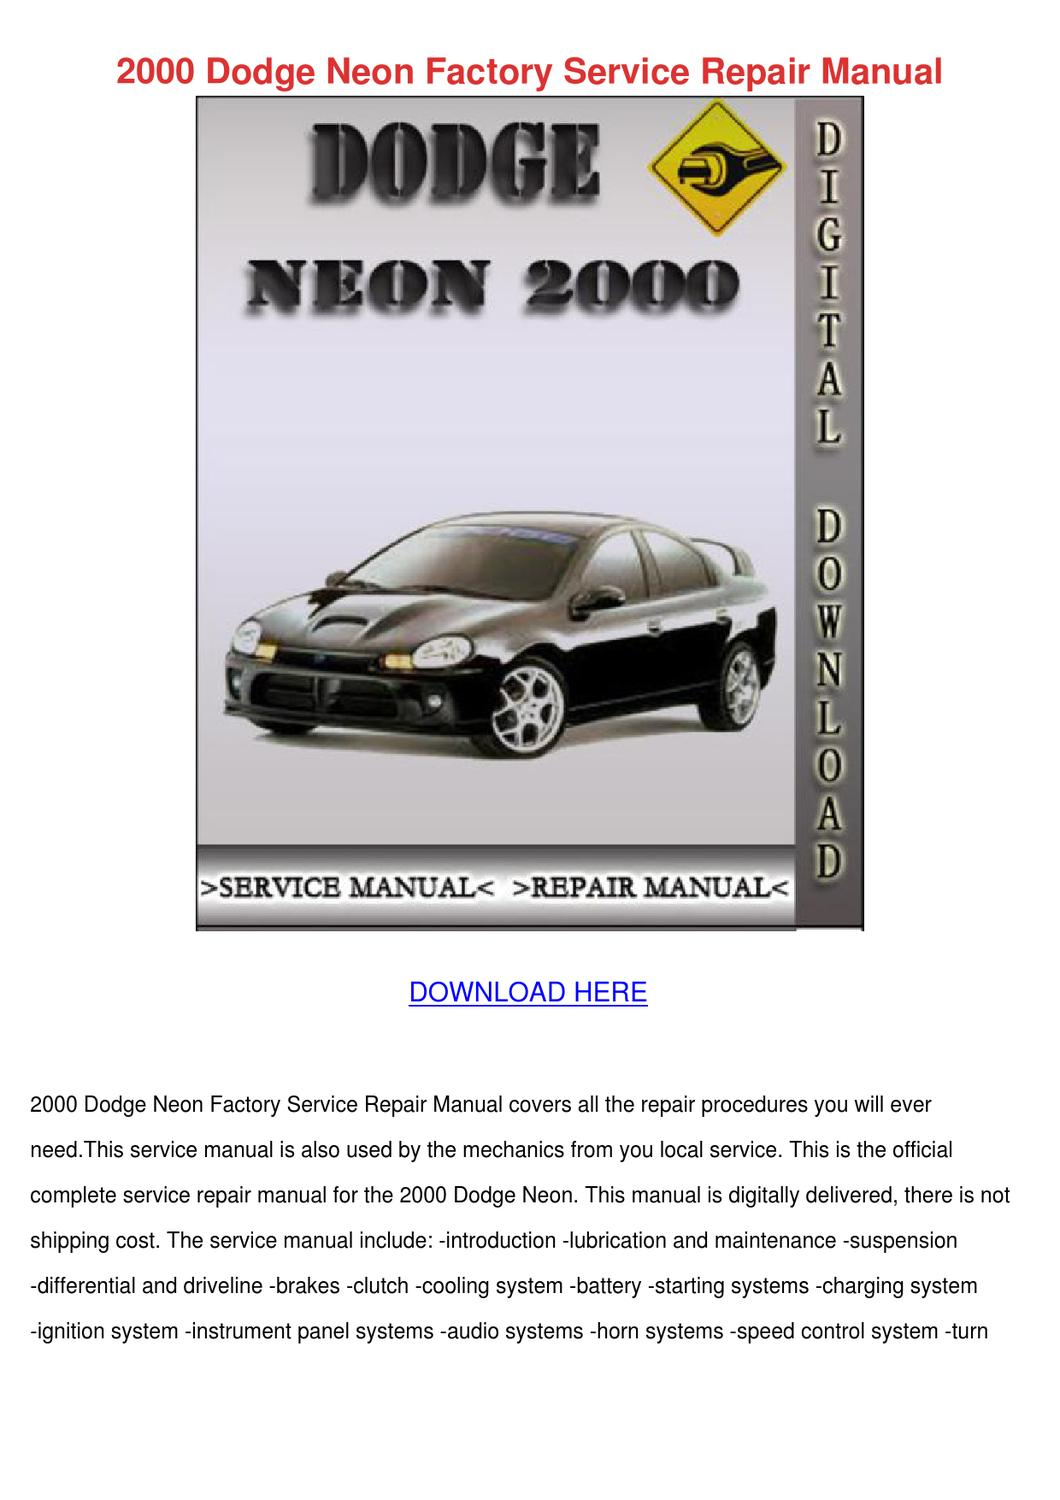 2000 dodge neon horn wiring diagram how to wire a three way switch factory service repair manual by